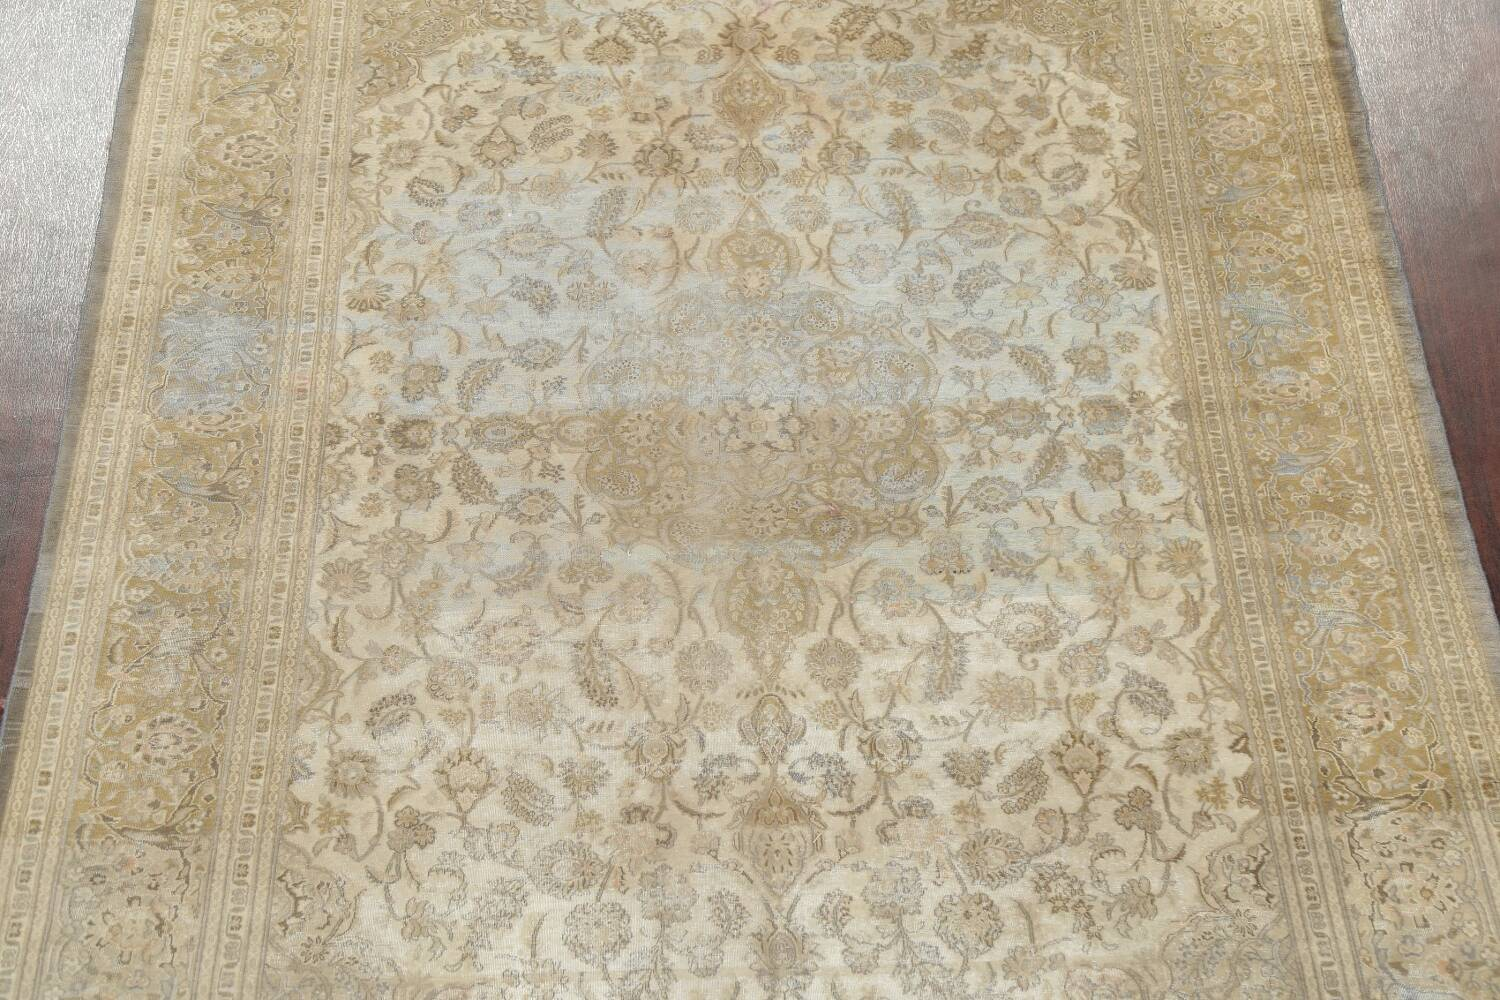 Muted Distressed Antique Kashan Persian Area Rug 7x10 image 3